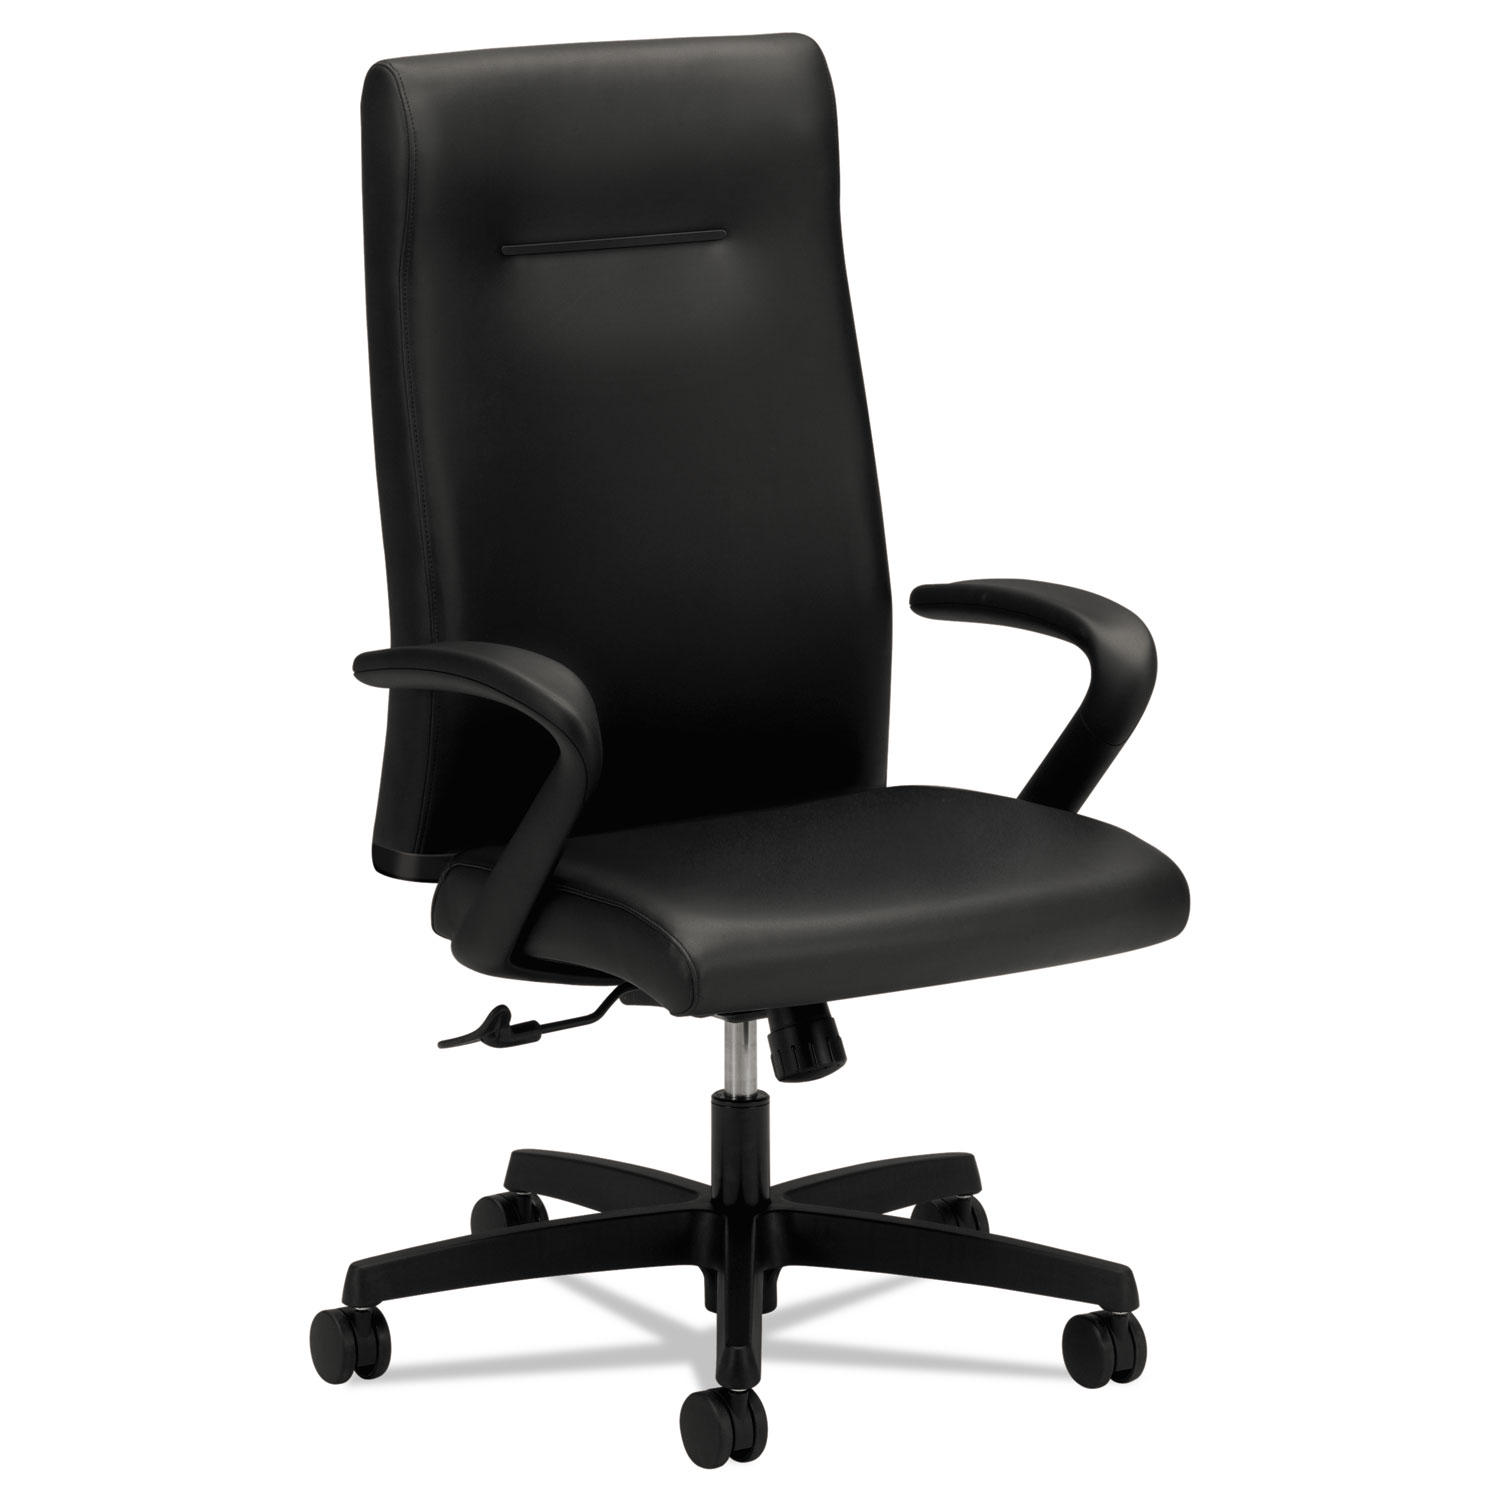 Ignition Series Executive High Back Chair Black Leather Upholstery